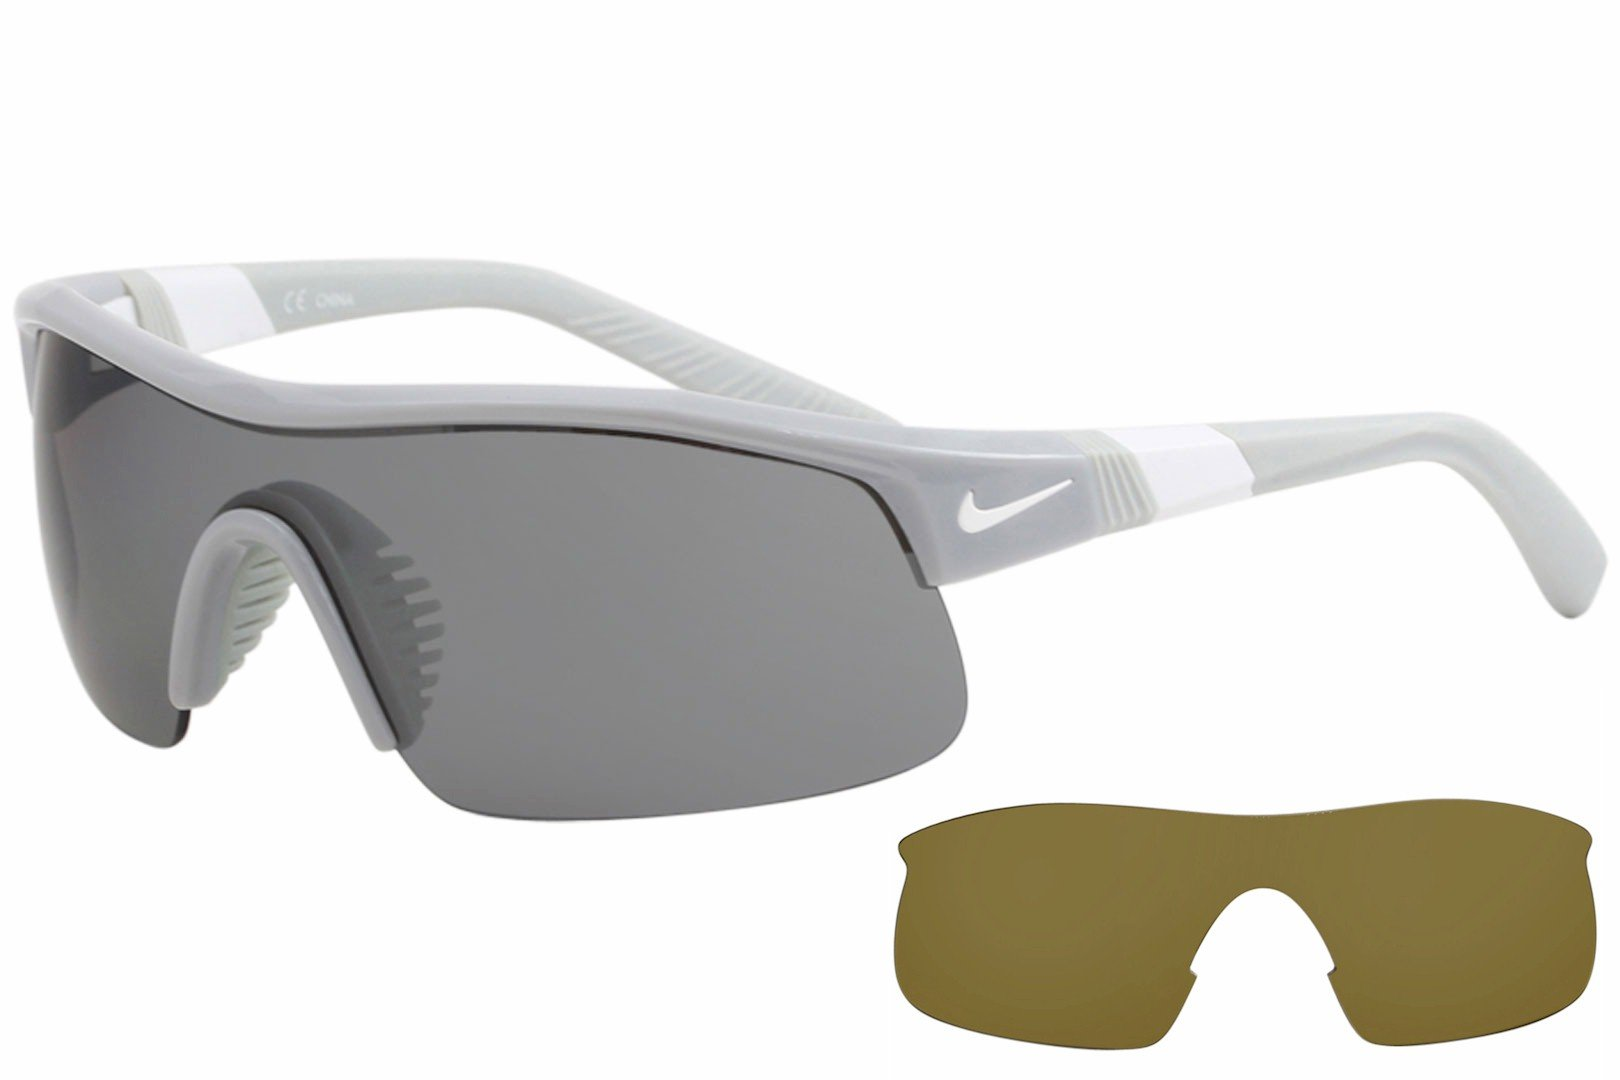 Nike Golf Show X1 Sunglasses, Wolf Grey/White Frame, Grey with Silver Flash/Outdoor Tint Lens